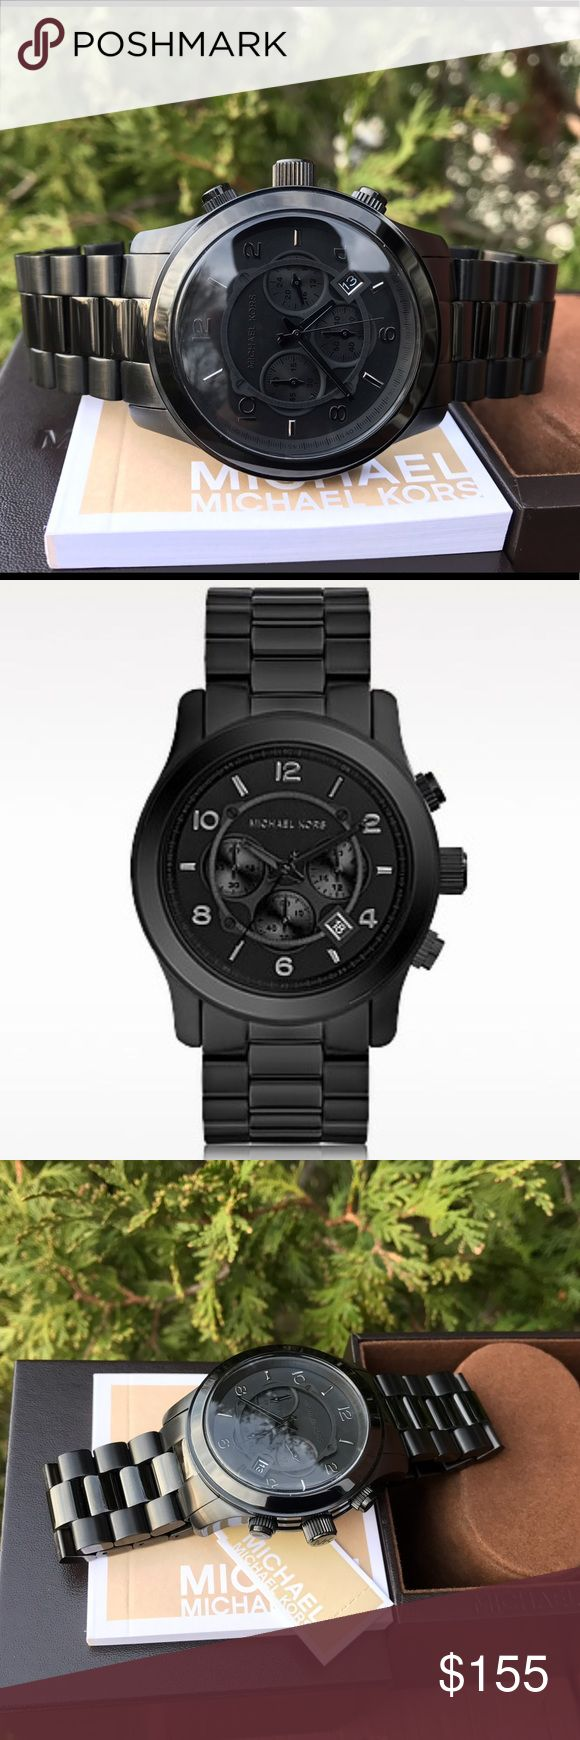 New Men's Michael Kors 45mm MK Runway Watch MK8157 🔥 LAST 1! 🔥 New Authentic MK8157 💎 Model: Runway 💎 Retail: $275 / Black stainless steel band with chronograph dial / Michael Kors watch box and owners booklet included / 45mm case / 10 ATM / UPC: 691464611668 / No trades. Buy now or offer only / Same business day shipping. Michael Kors Accessories Watches